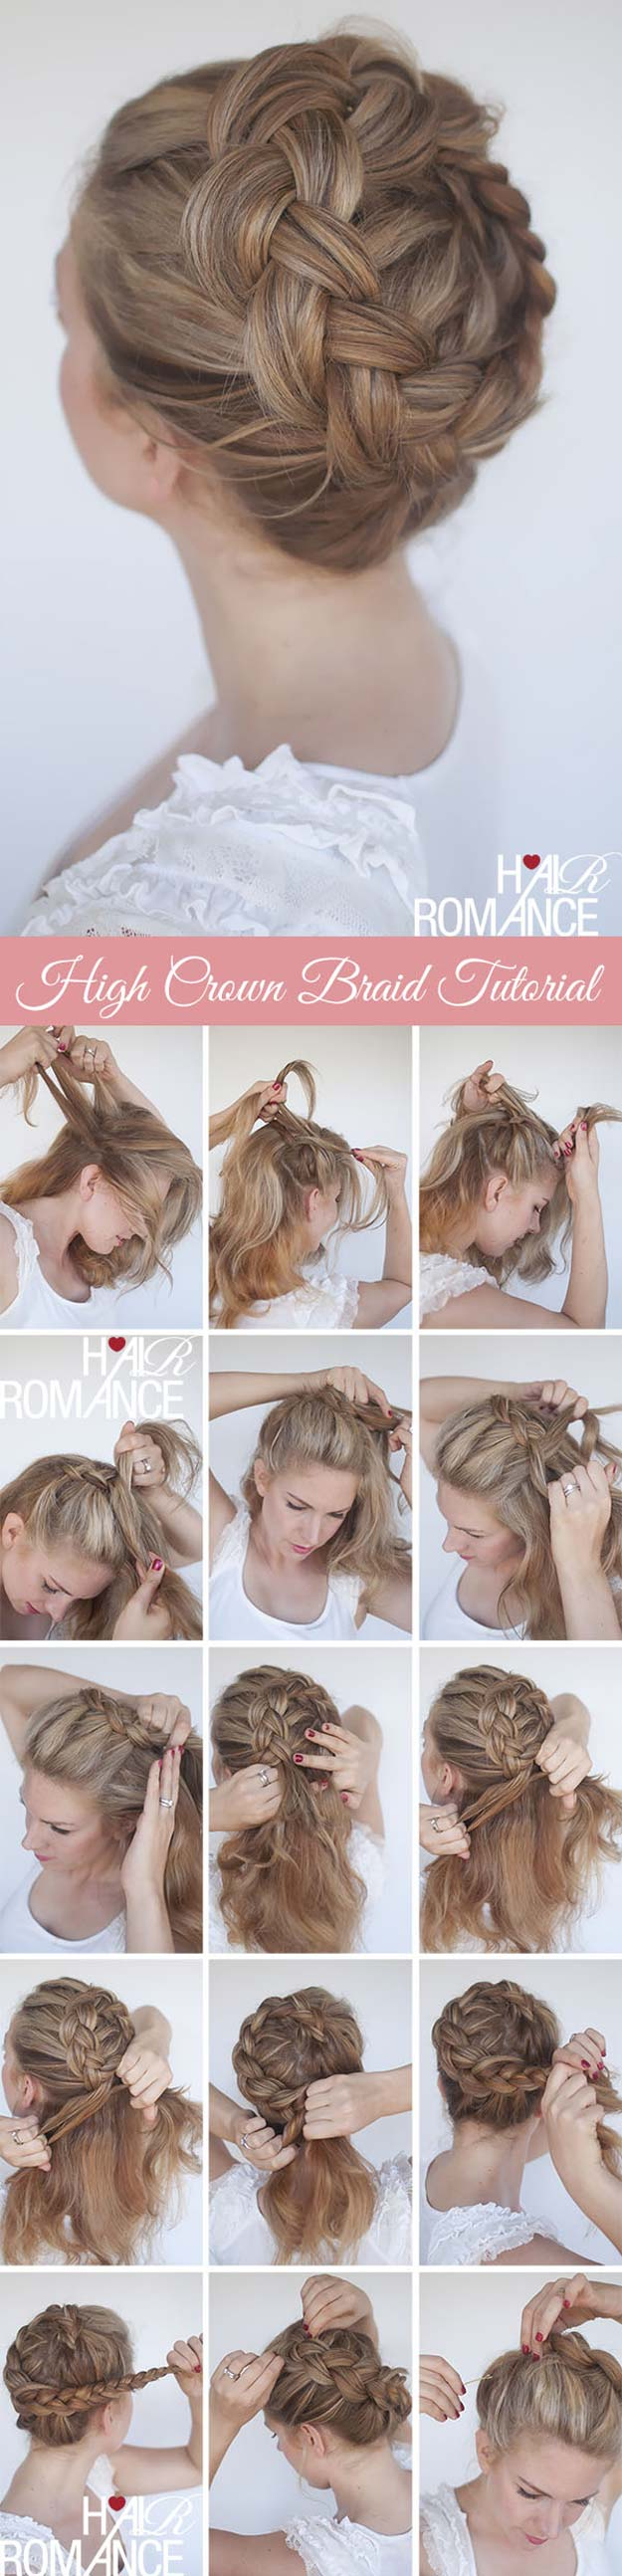 40 of the best cute hair braiding tutorials best hair braiding tutorials high braided crown tutorial easy step by step tutorials for izmirmasajfo